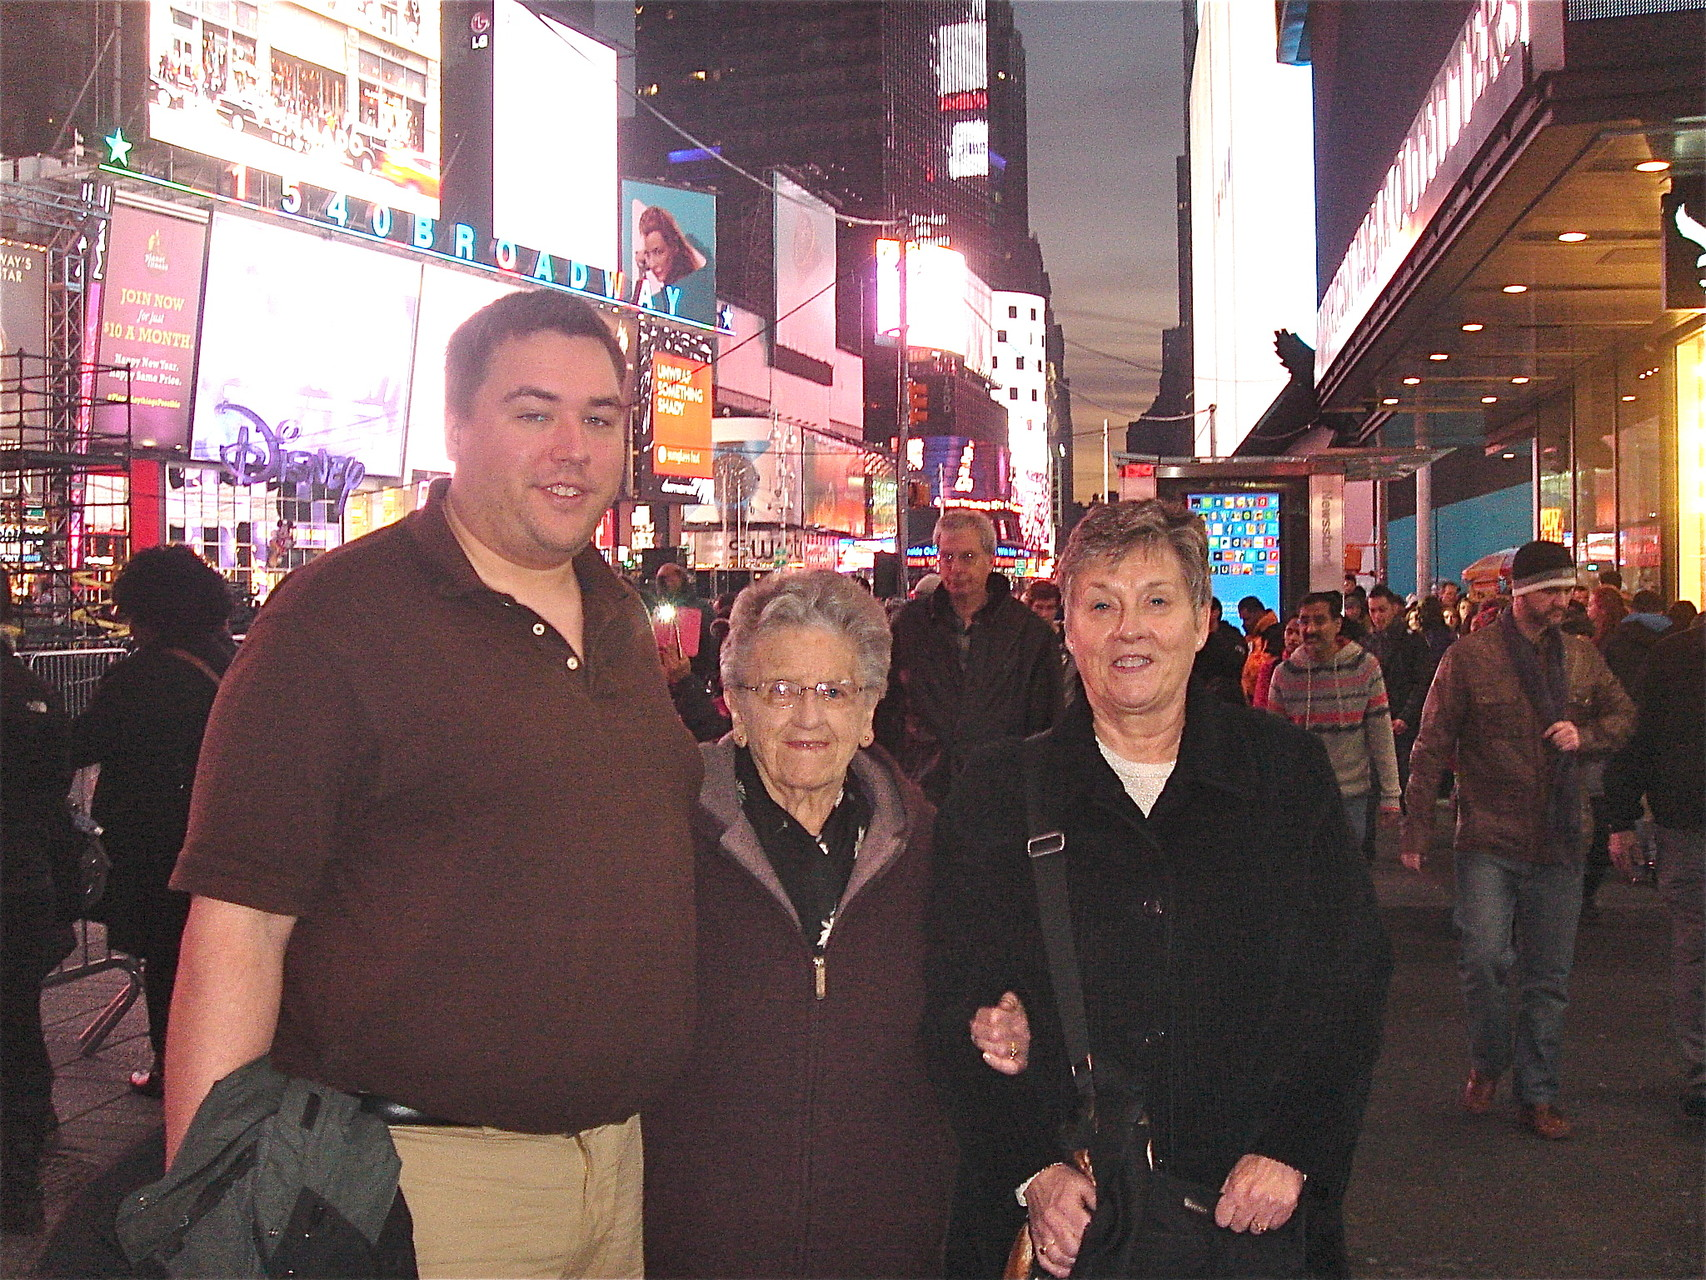 Greg Wagne, Mary Lou & Cindy Wagner, Times Square, NYC Dec., 2014